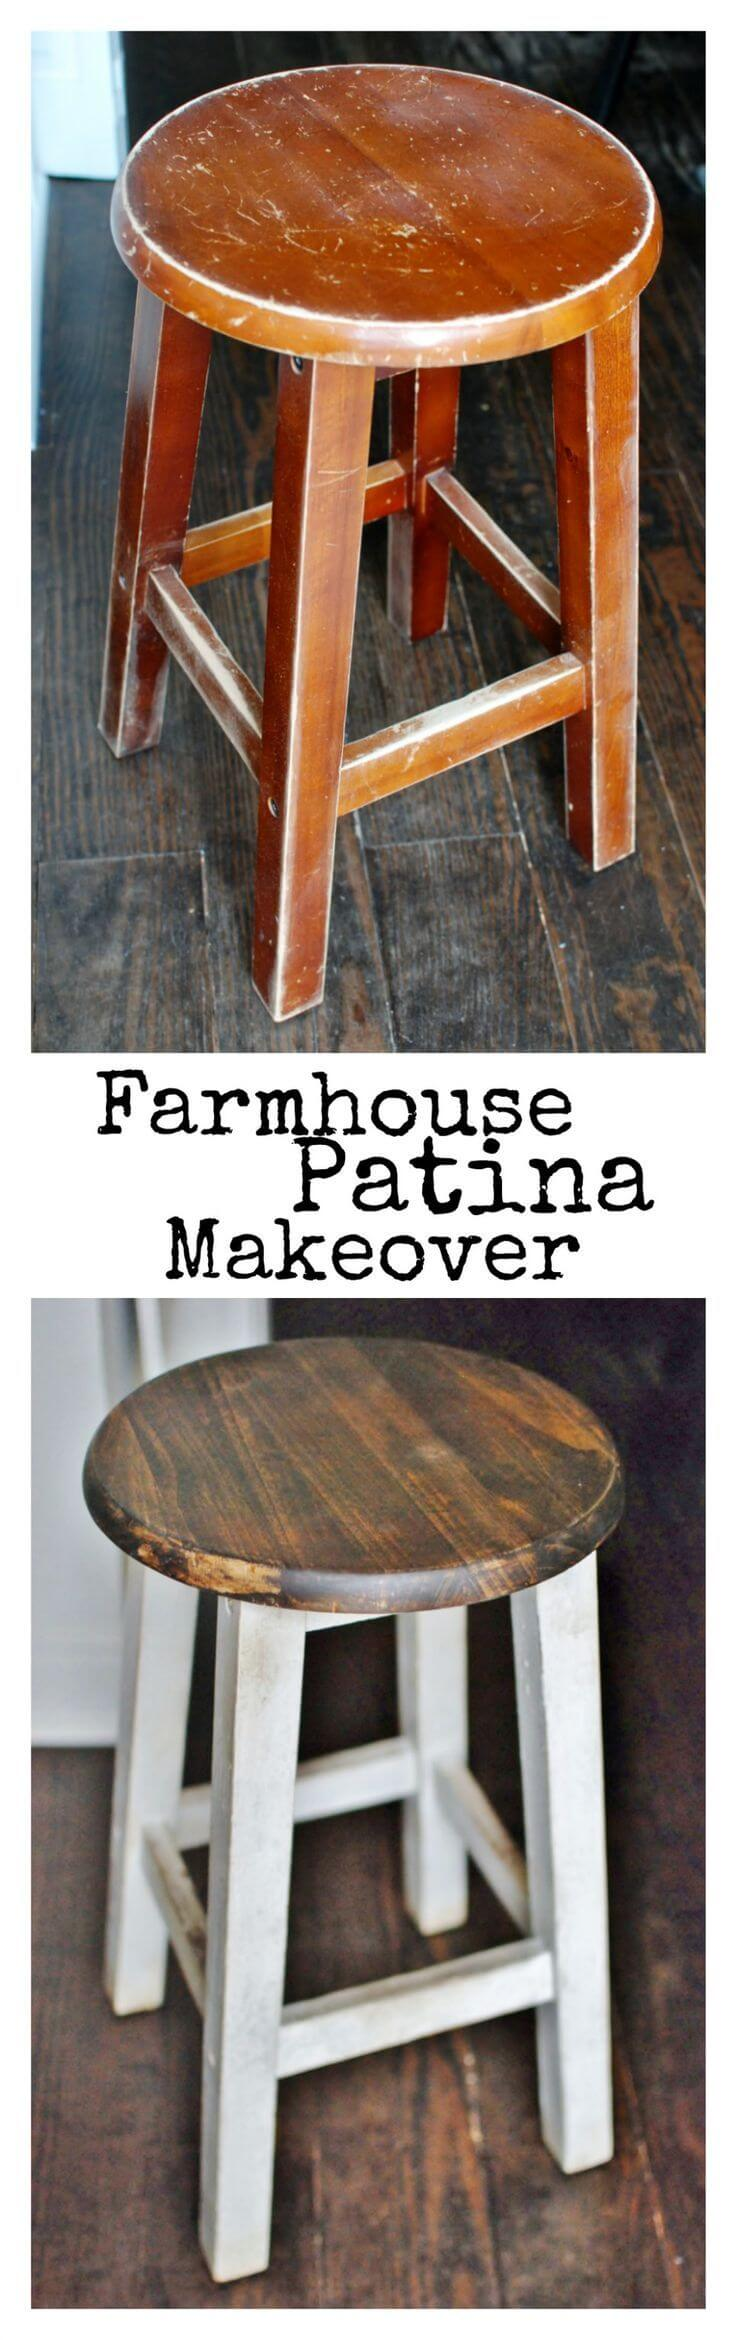 Refinish a Stool with Pretty Patina